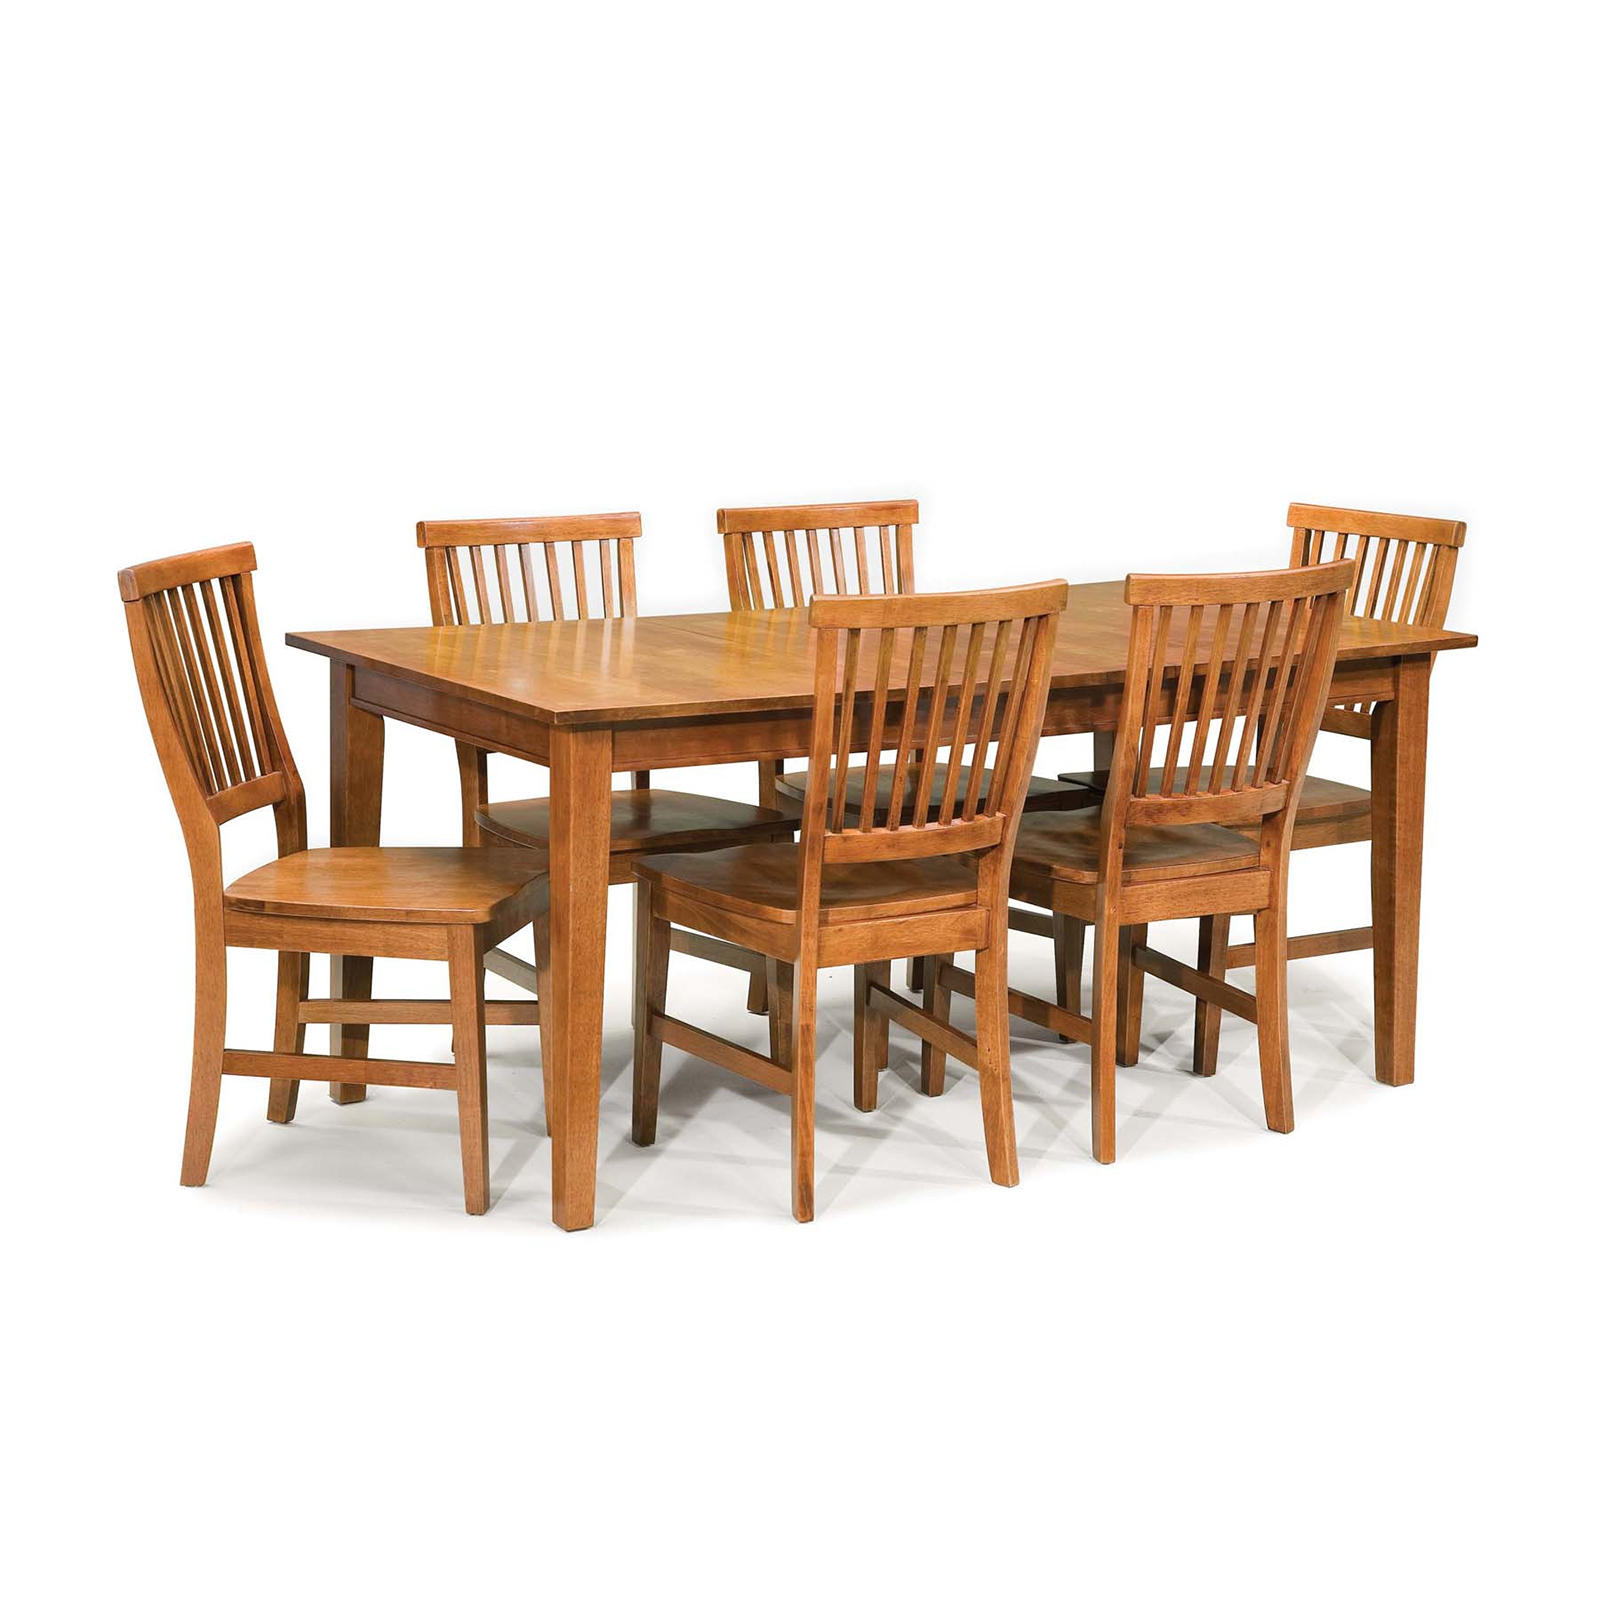 Home styles arts crafts 7 piece dining set cottage oak hayneedle watchthetrailerfo